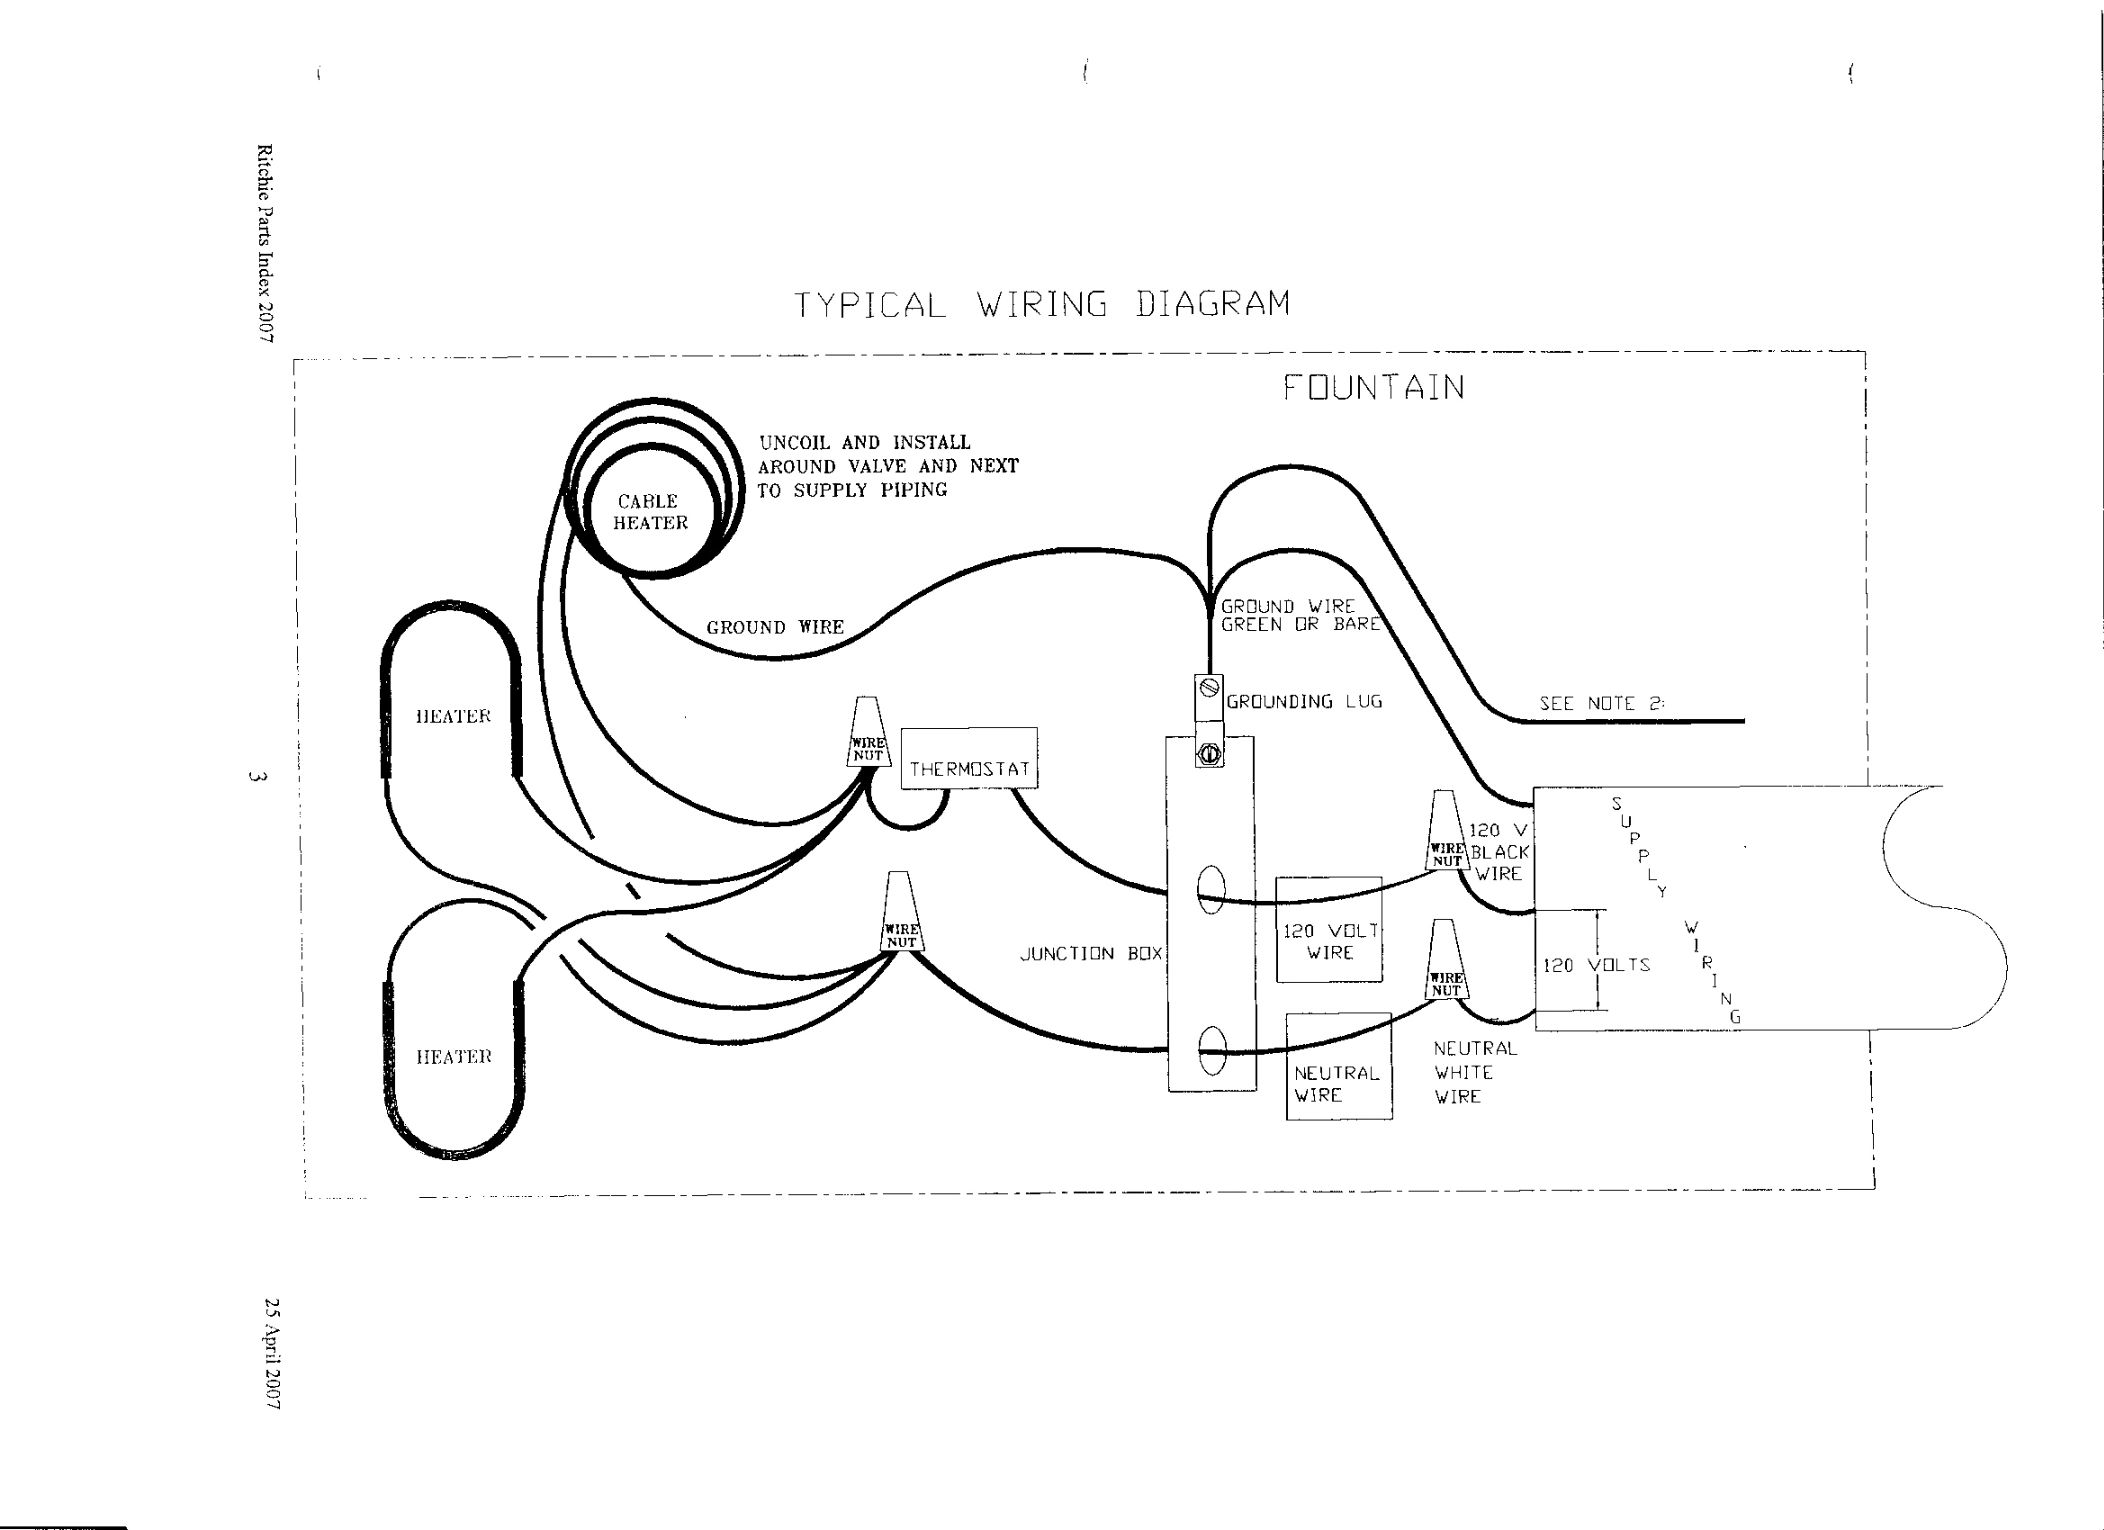 Typical Wiring Diagram typical wiring diagram for waterers and fountains ritchie waterer wiring diagram at creativeand.co